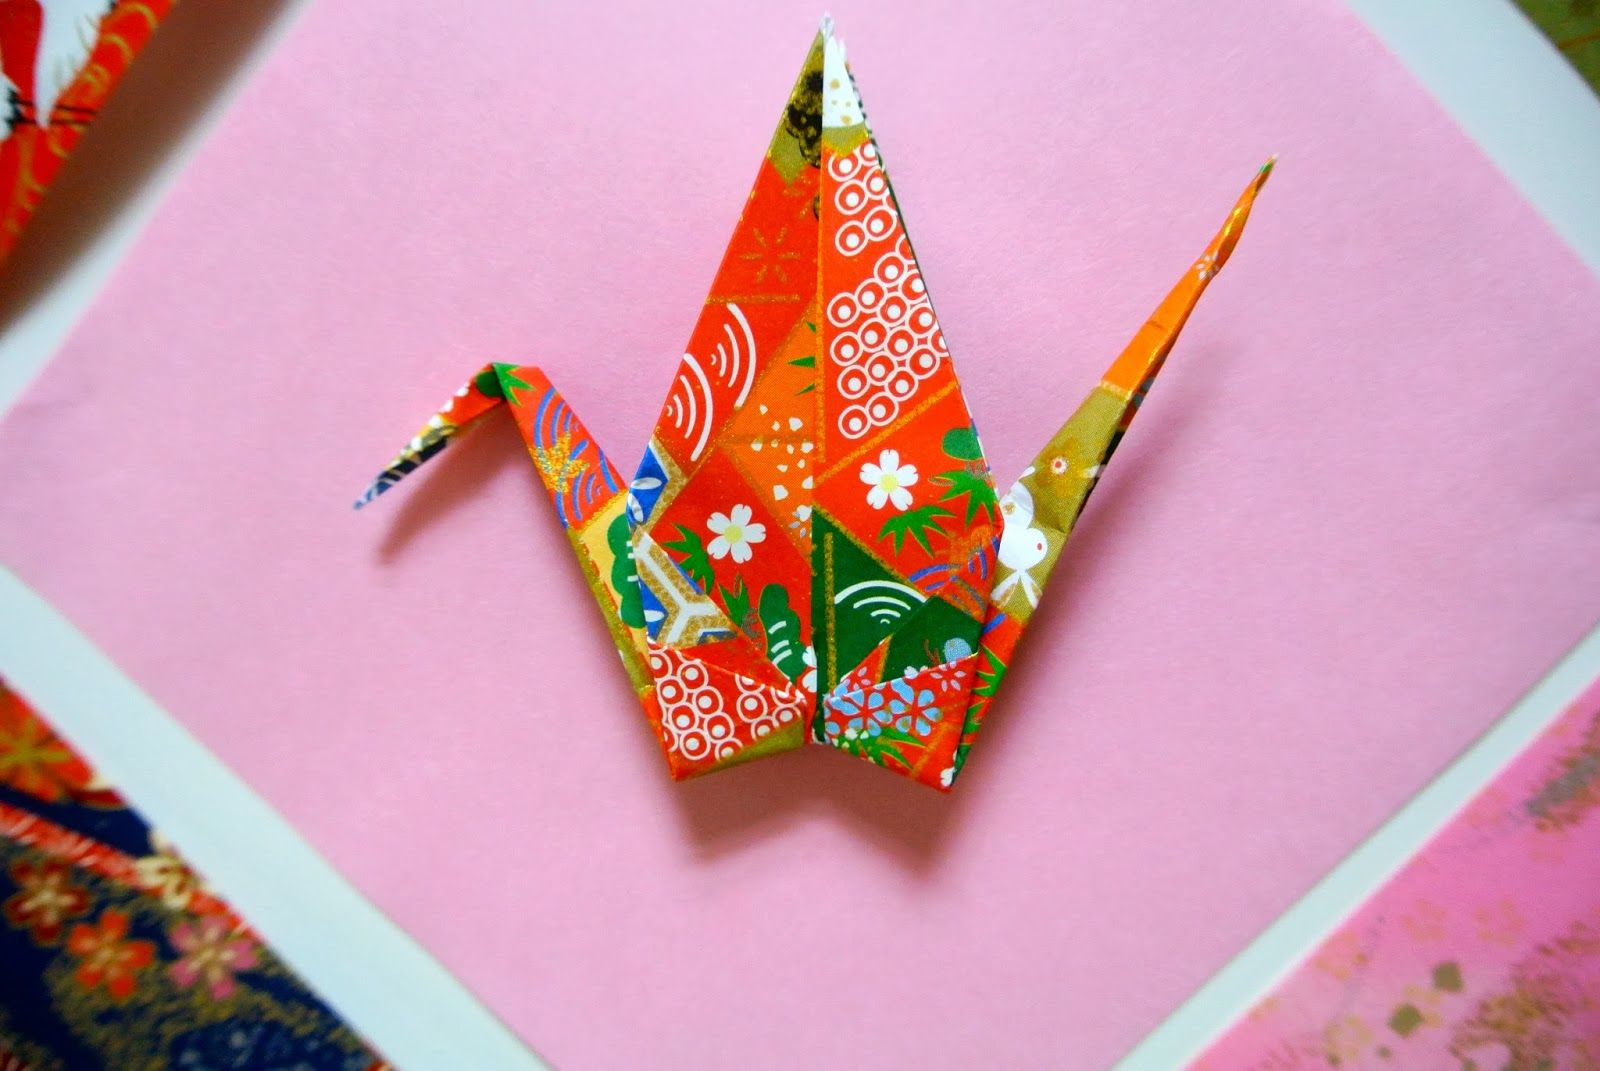 Paper Crafts for Kids: 30 Fun Projects You'll Want to Try - Frugal ... | 1071x1600